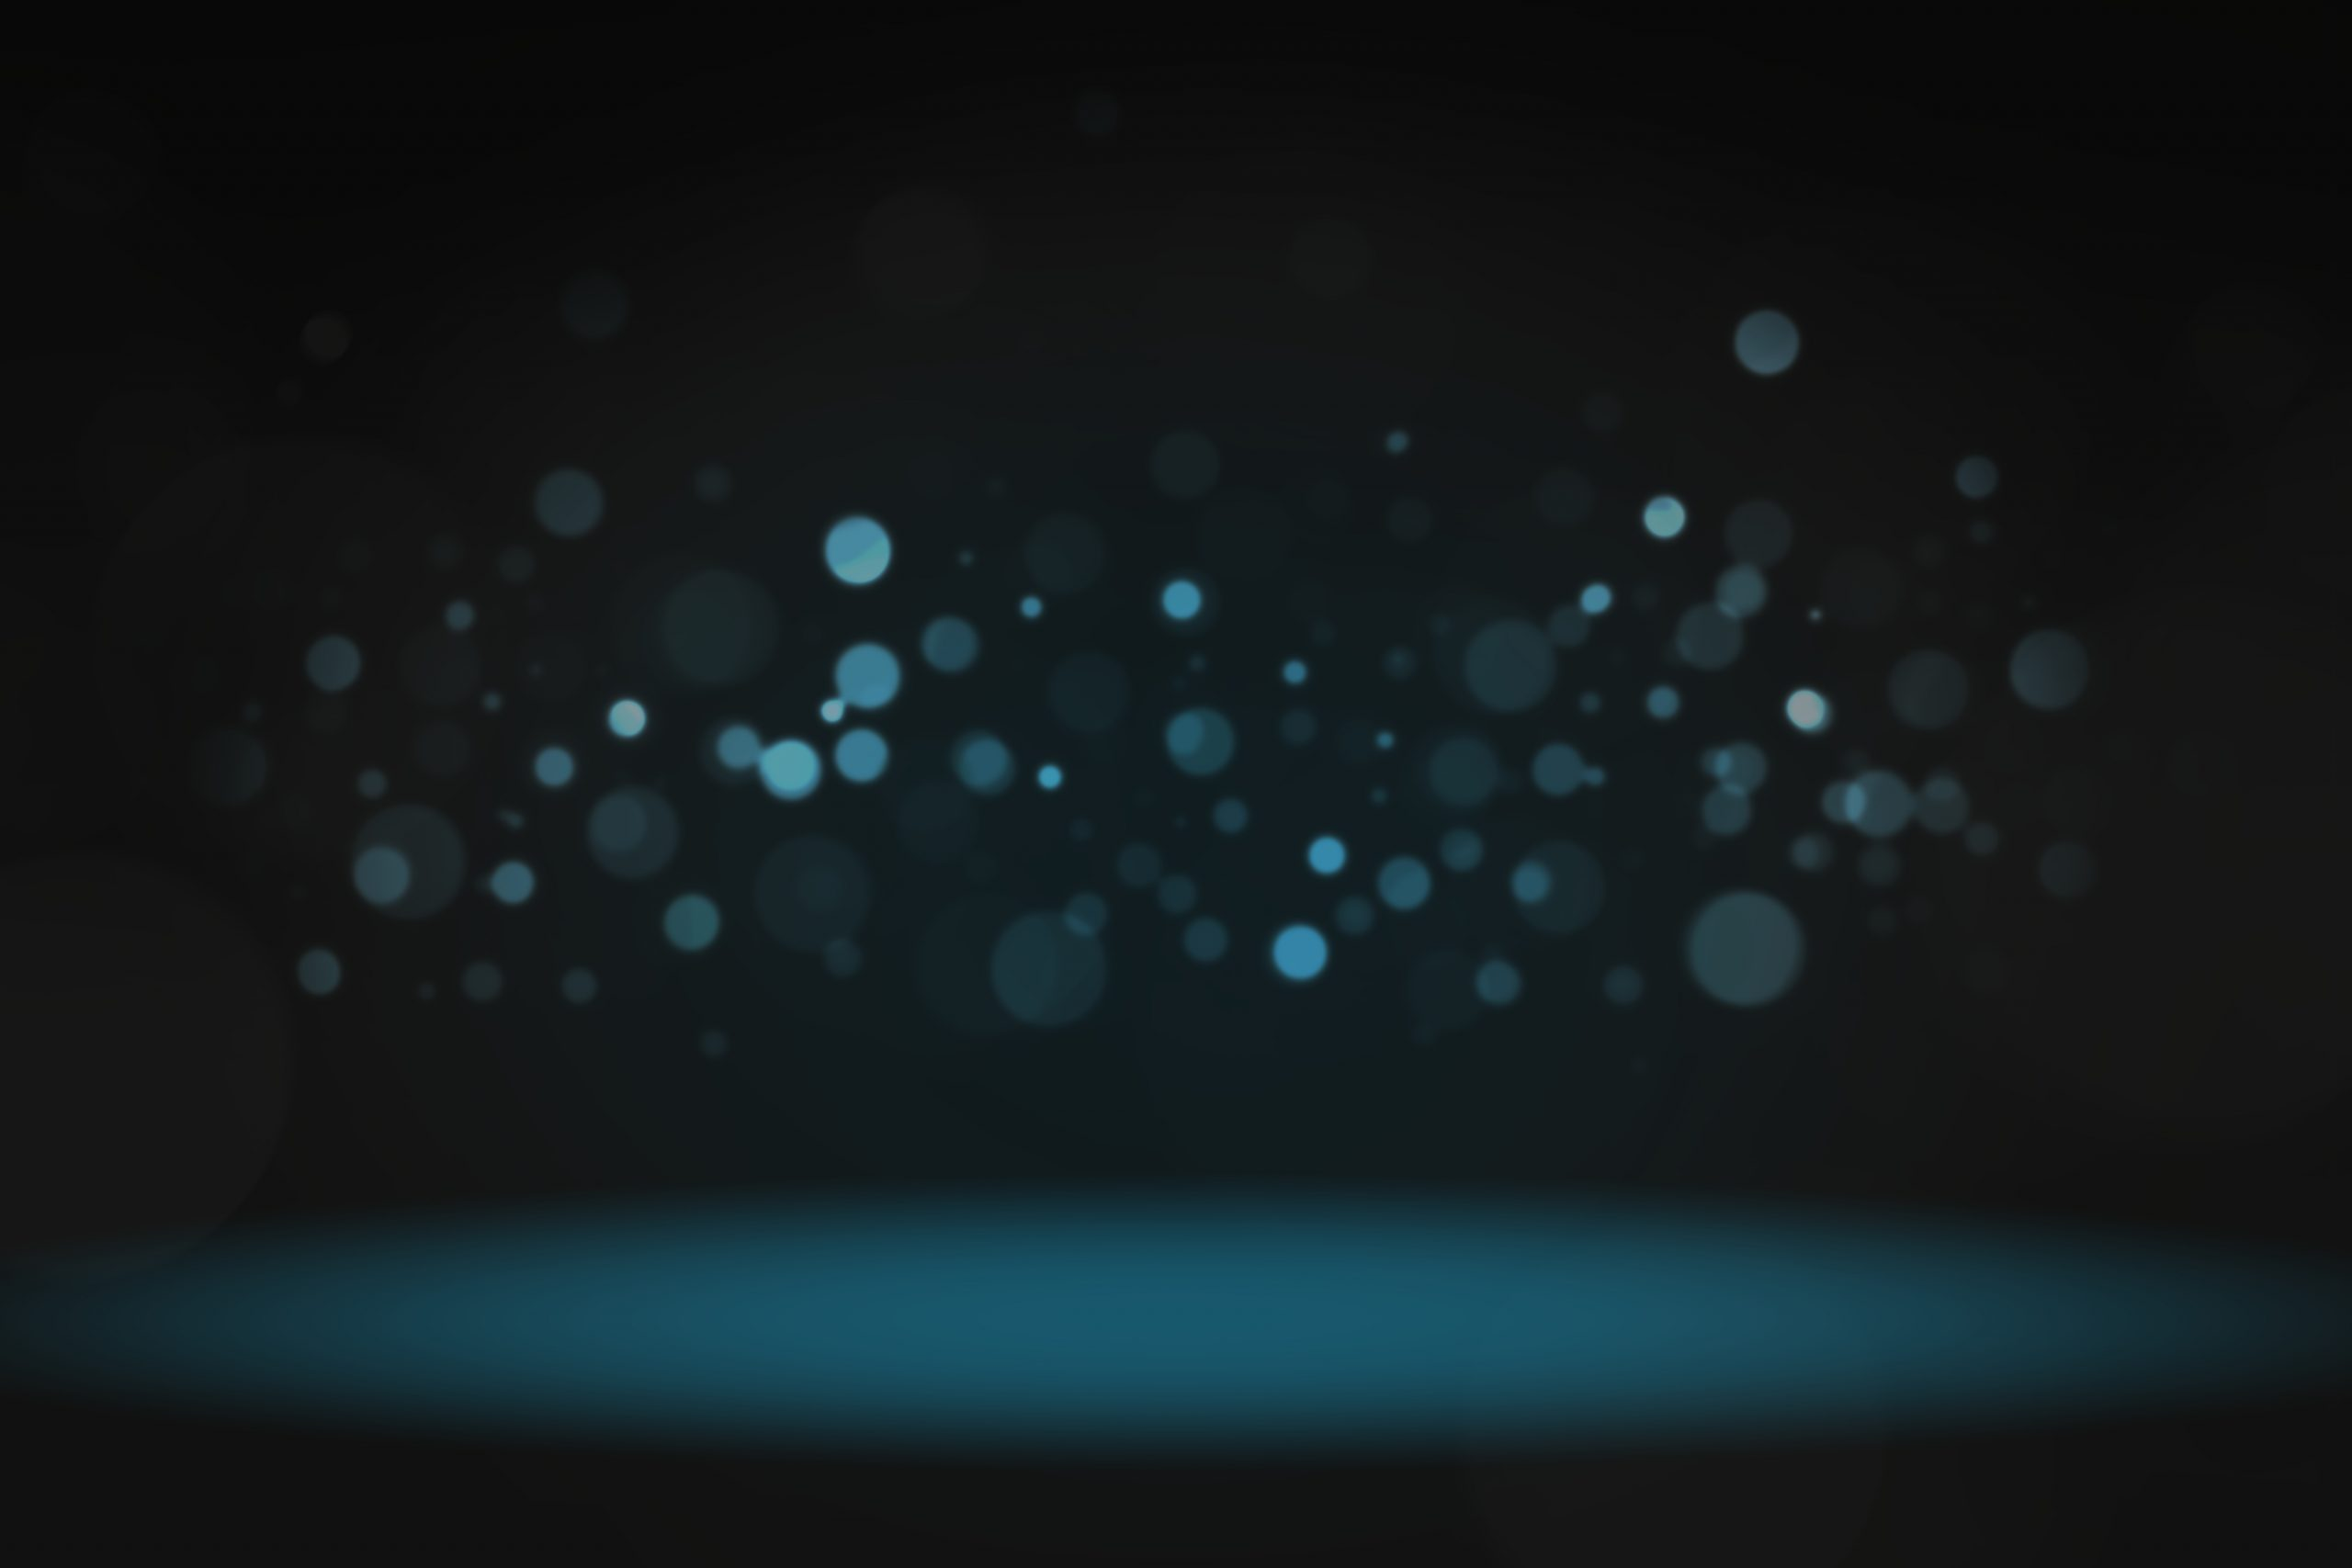 Bokeh lights product background